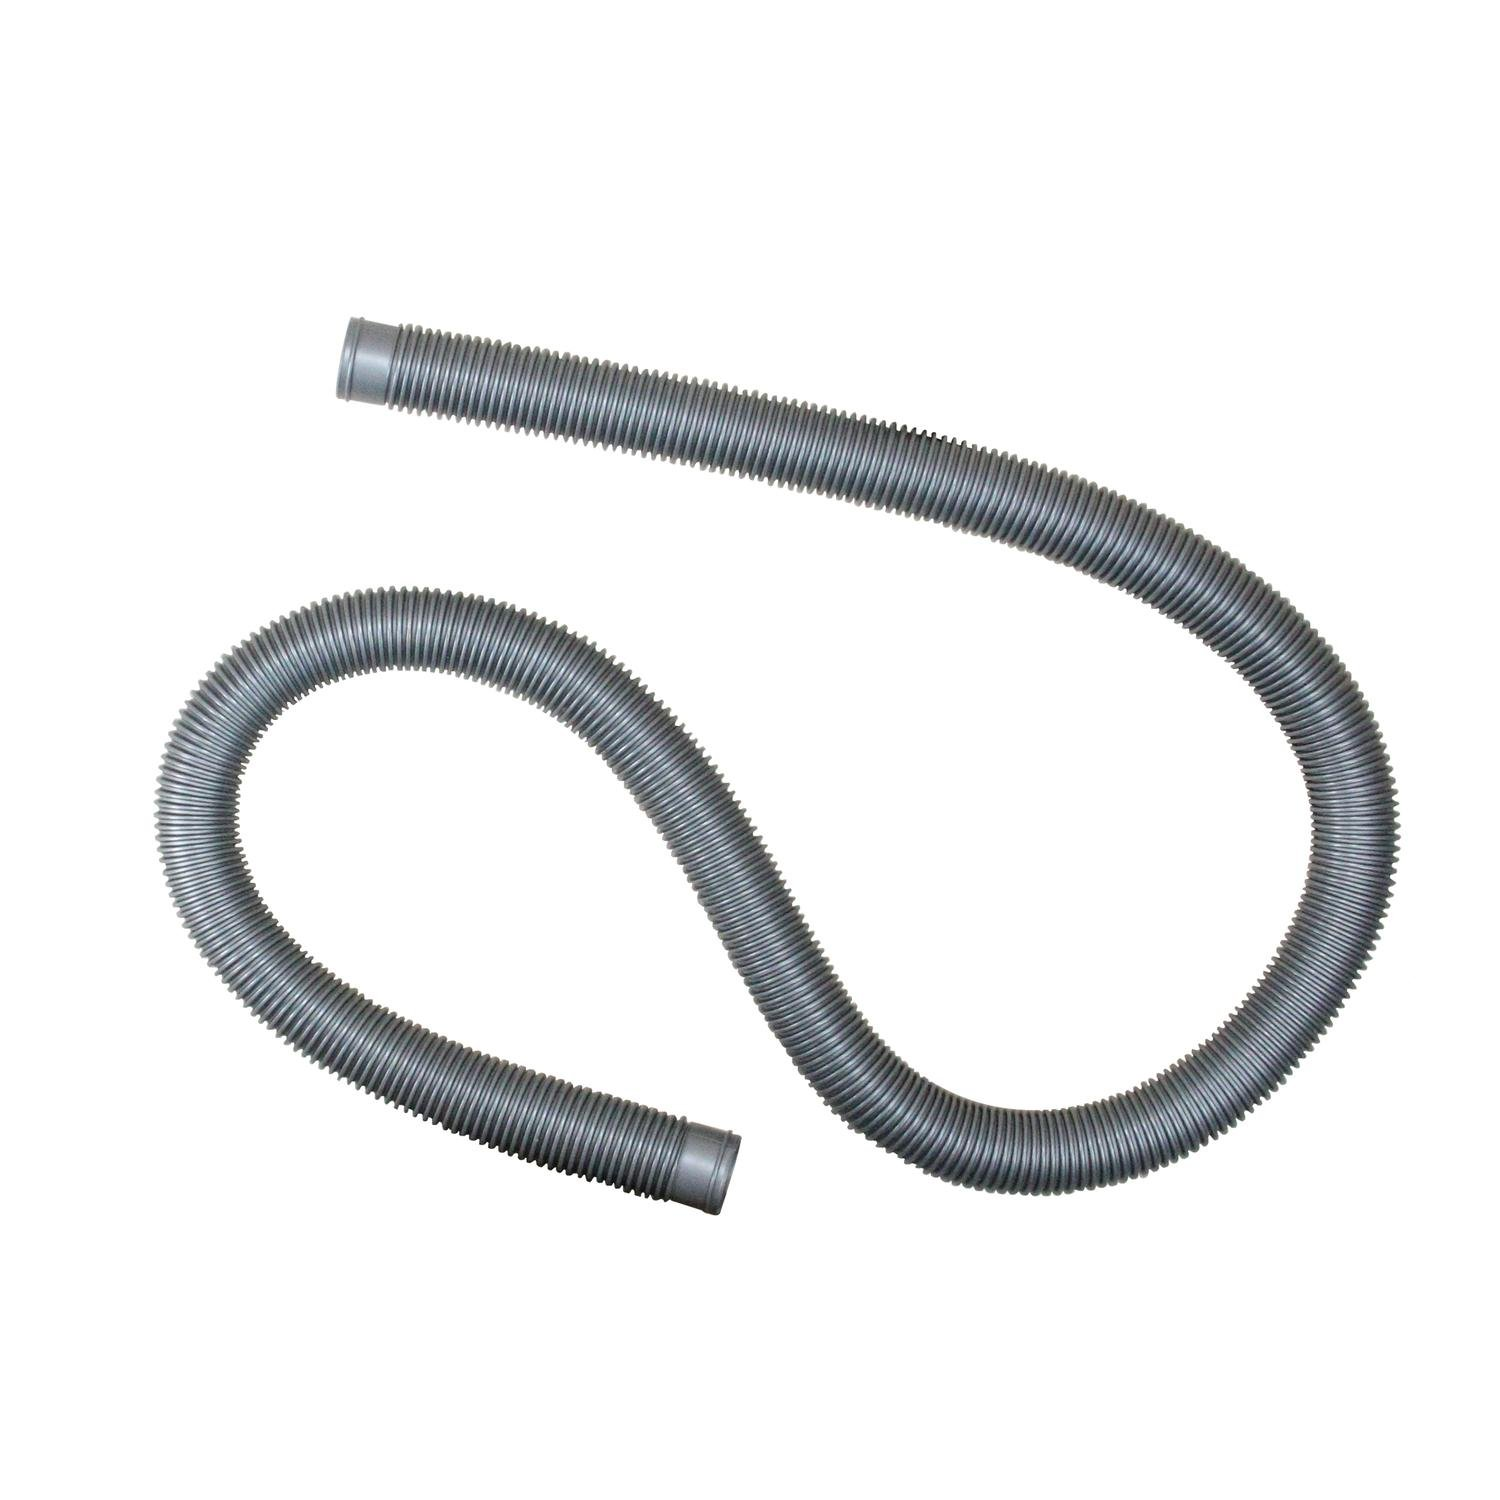 Pool Central 32756926 Heavy-Duty Pool Filter Connect Hose-6' x 1.5'' 6' x, Silver